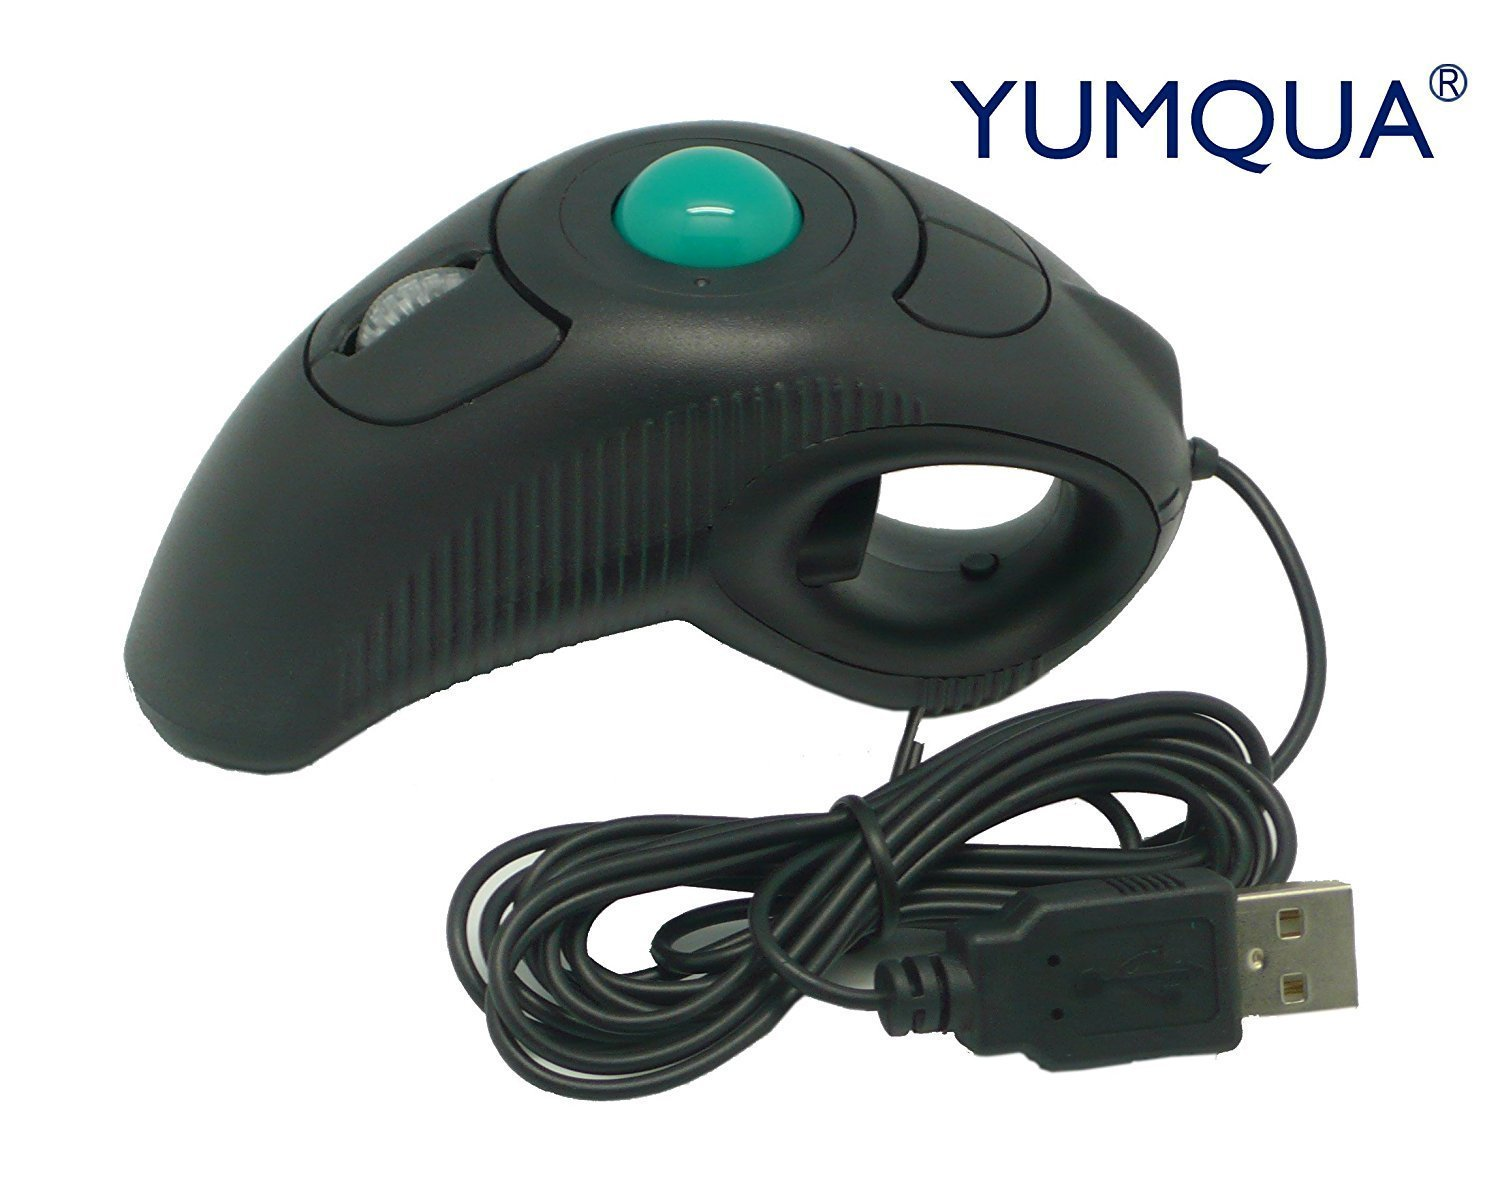 YUMQUA Y-10 Portable Finger Handheld 4D Wired USB Trackball Mouse for Left/ Right Handed Users(Black) Laptop Lovers Y-10-US